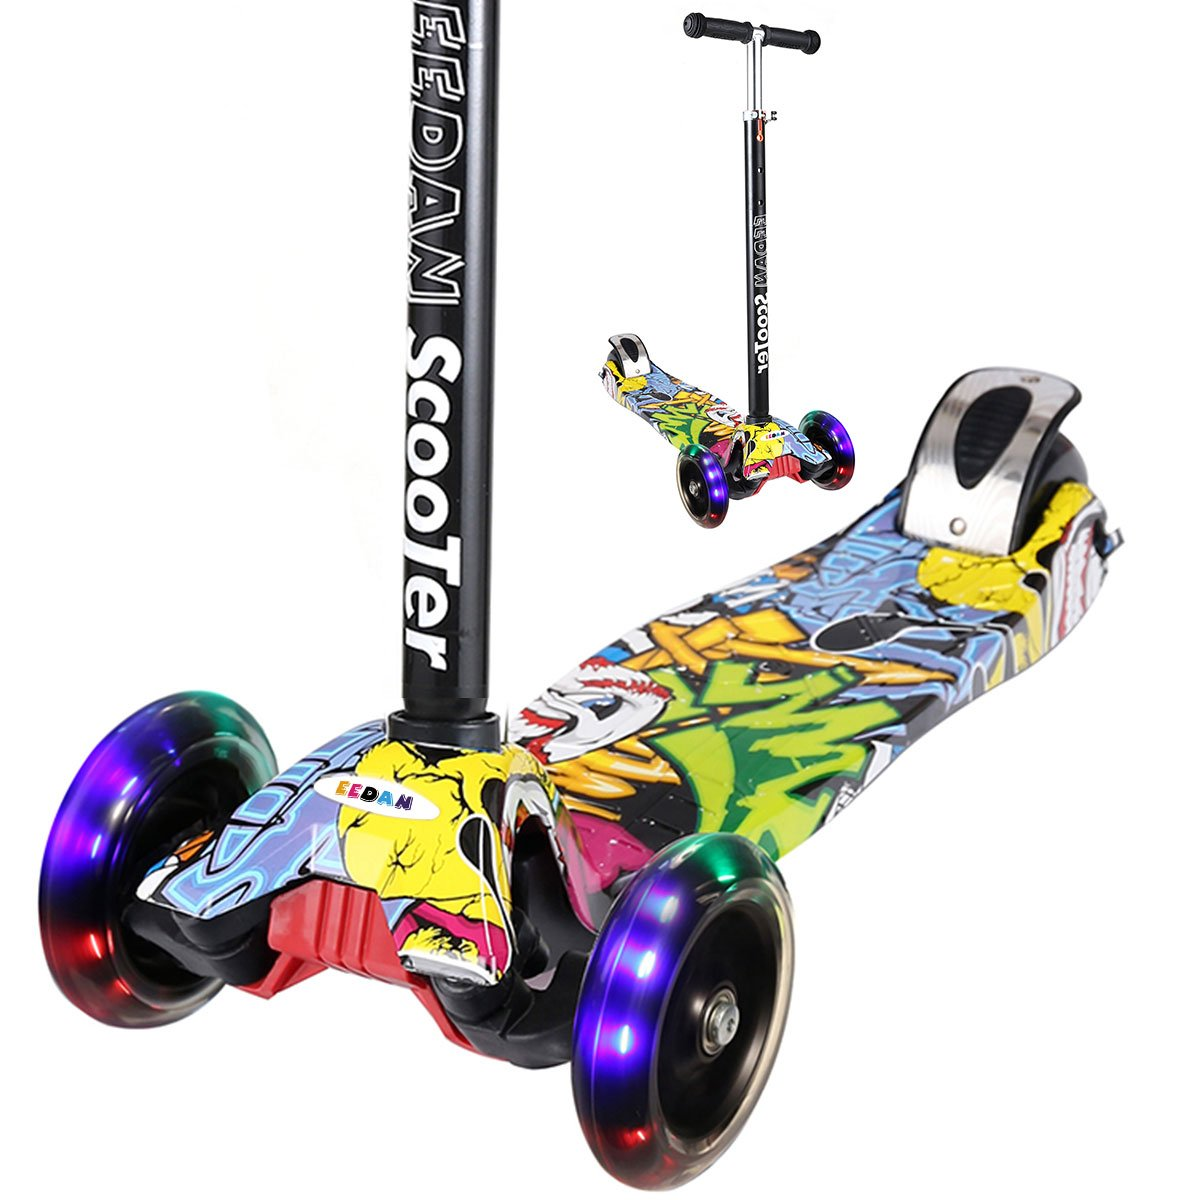 EEDAN Scooter for Kids 3 Wheel T-bar Adjustable Height Handle Kick Scooters with Max Glider Deluxe PU Flashing Wheels Wide Deck for Children from 5 to 14 Year-Old (Pop Grafitti) by EEDAN